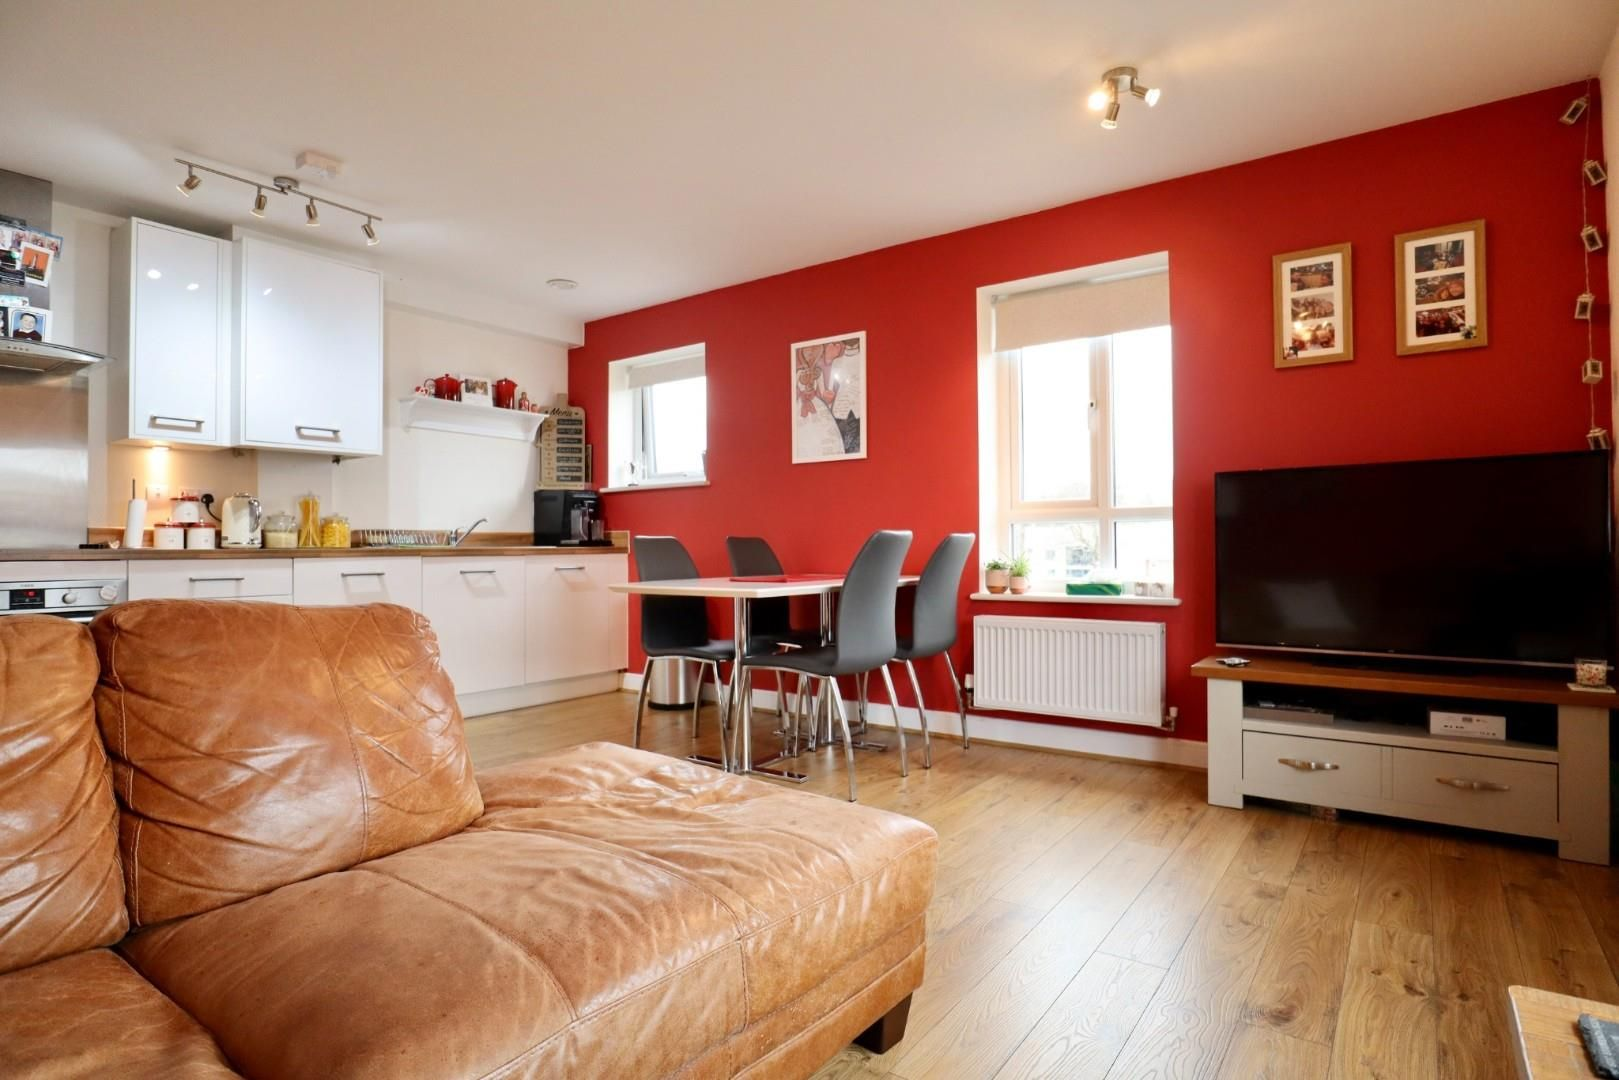 2 bed apartment for sale, RG12